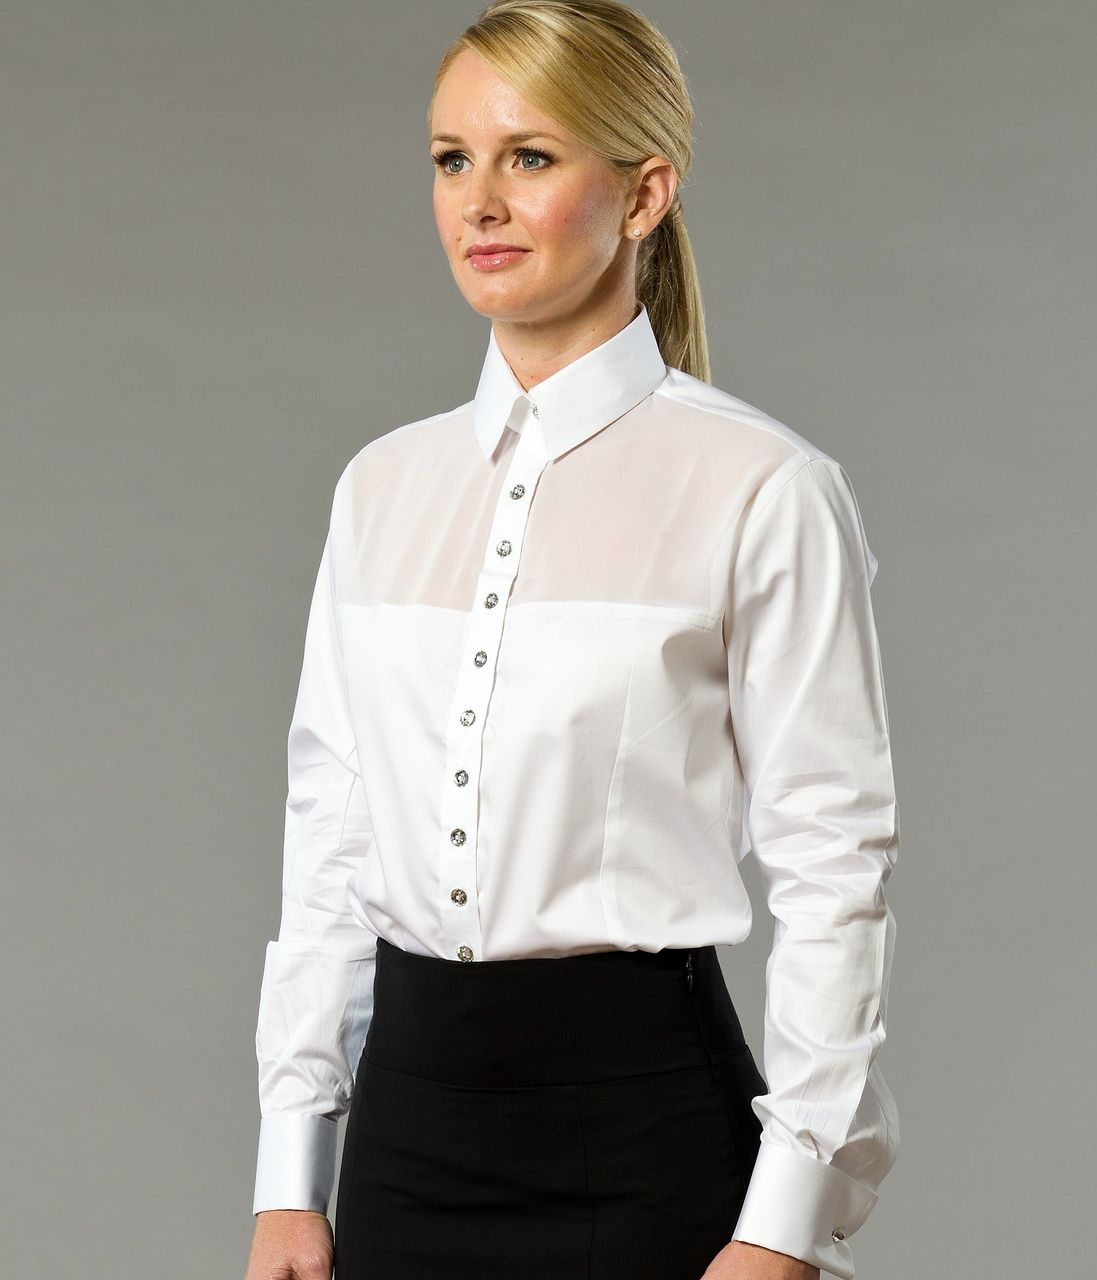 A Day in Paris Women's Business Shirt | Designed by The Shirt muse ...